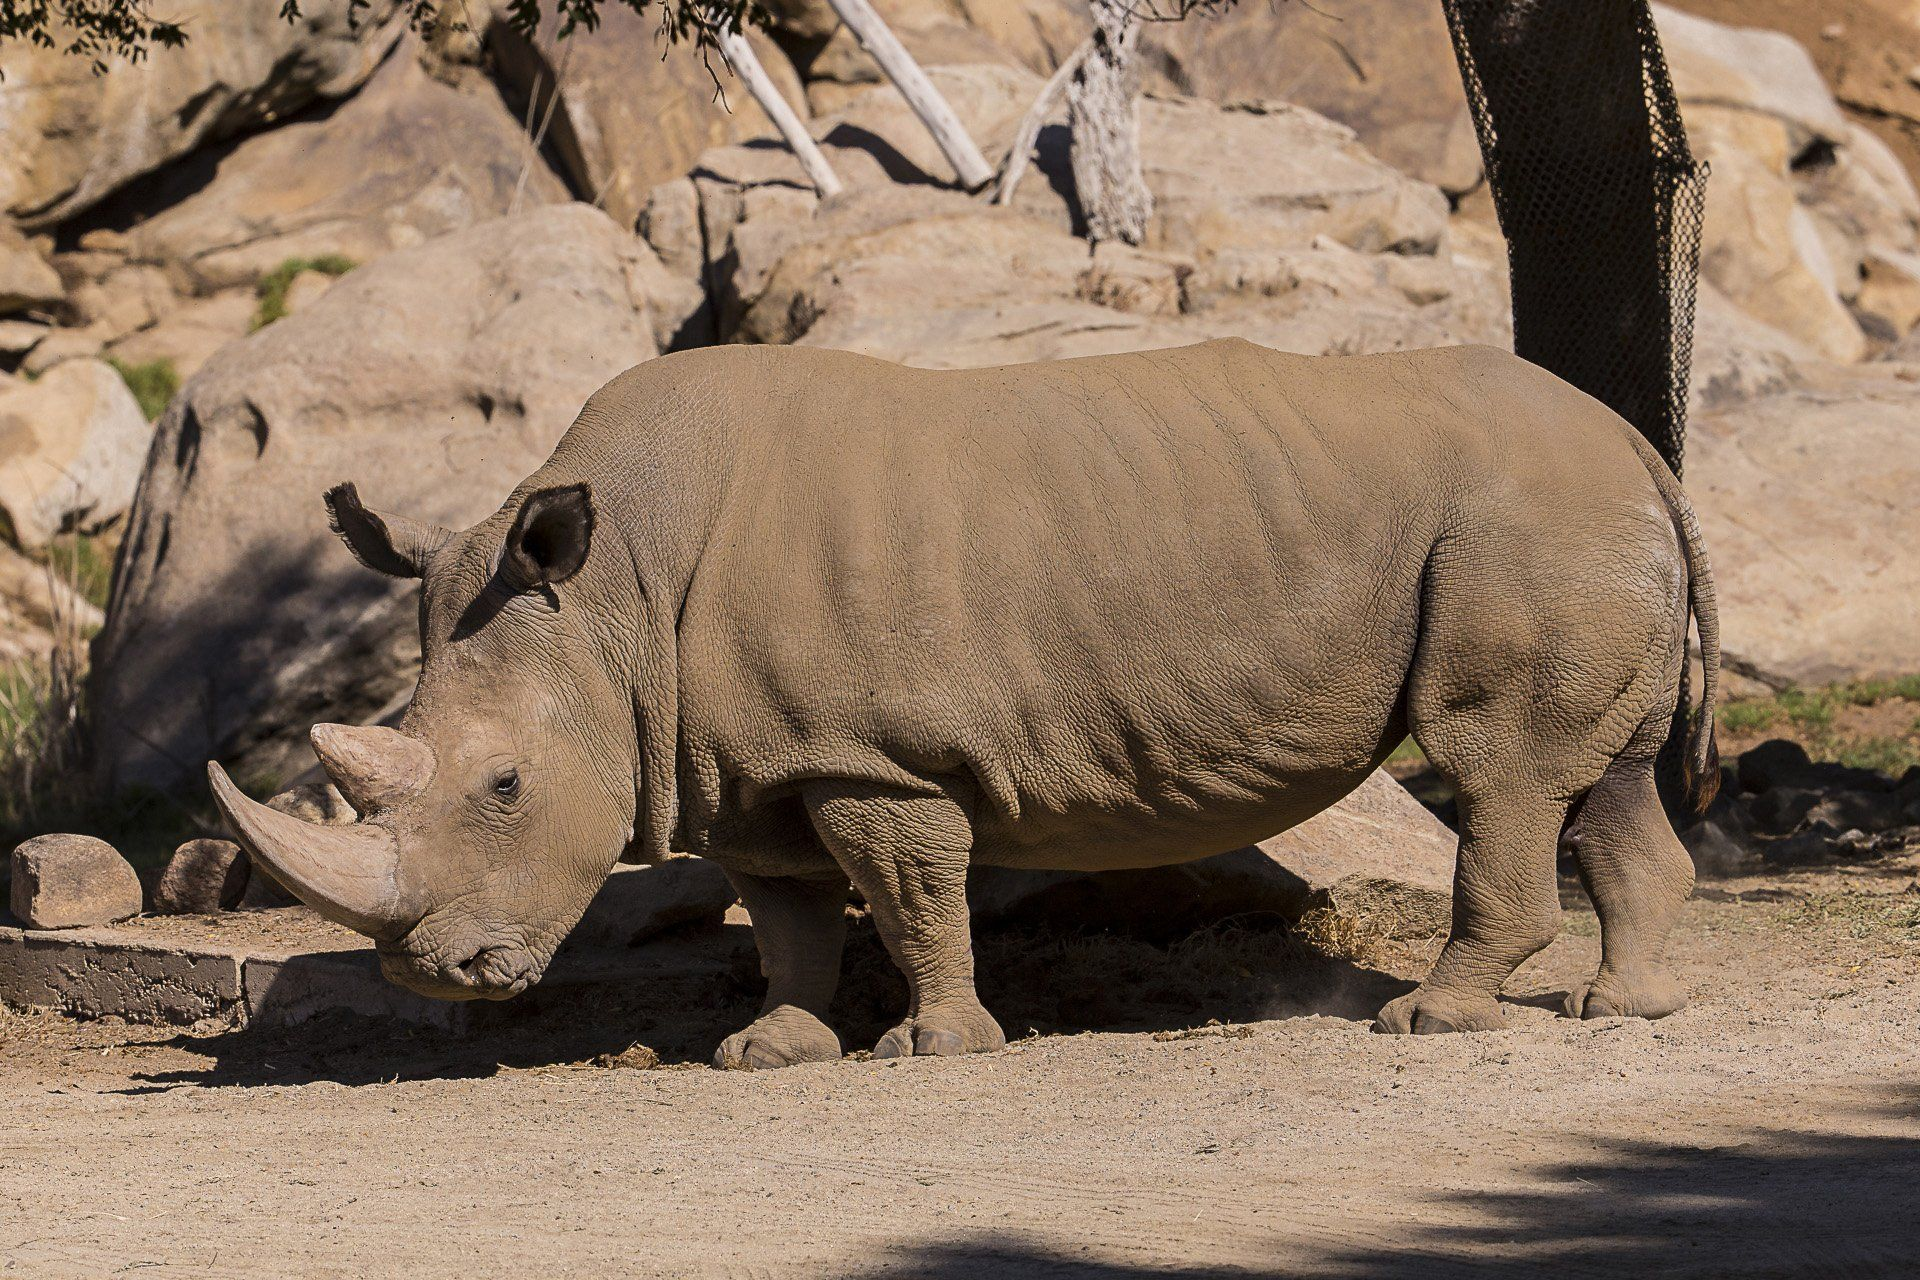 2014-12-15T214817Z_41325307_GM1EACG06Z901_RTRMADP_3_USA-CALIFORNIA-RHINO